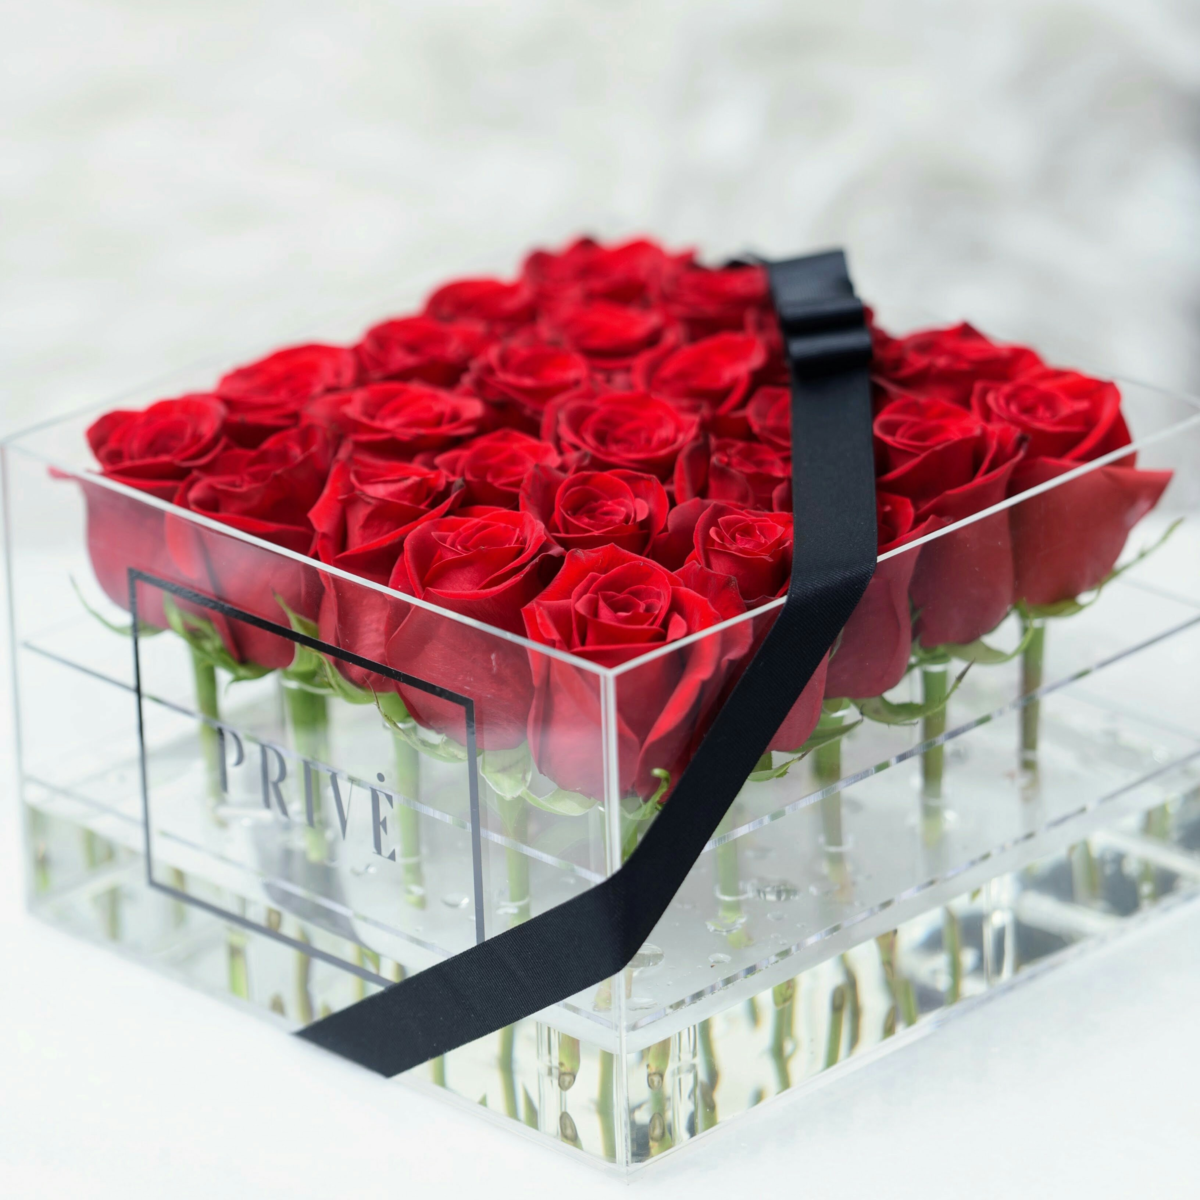 Premium preserved roses with preserved green stems, in a large ...